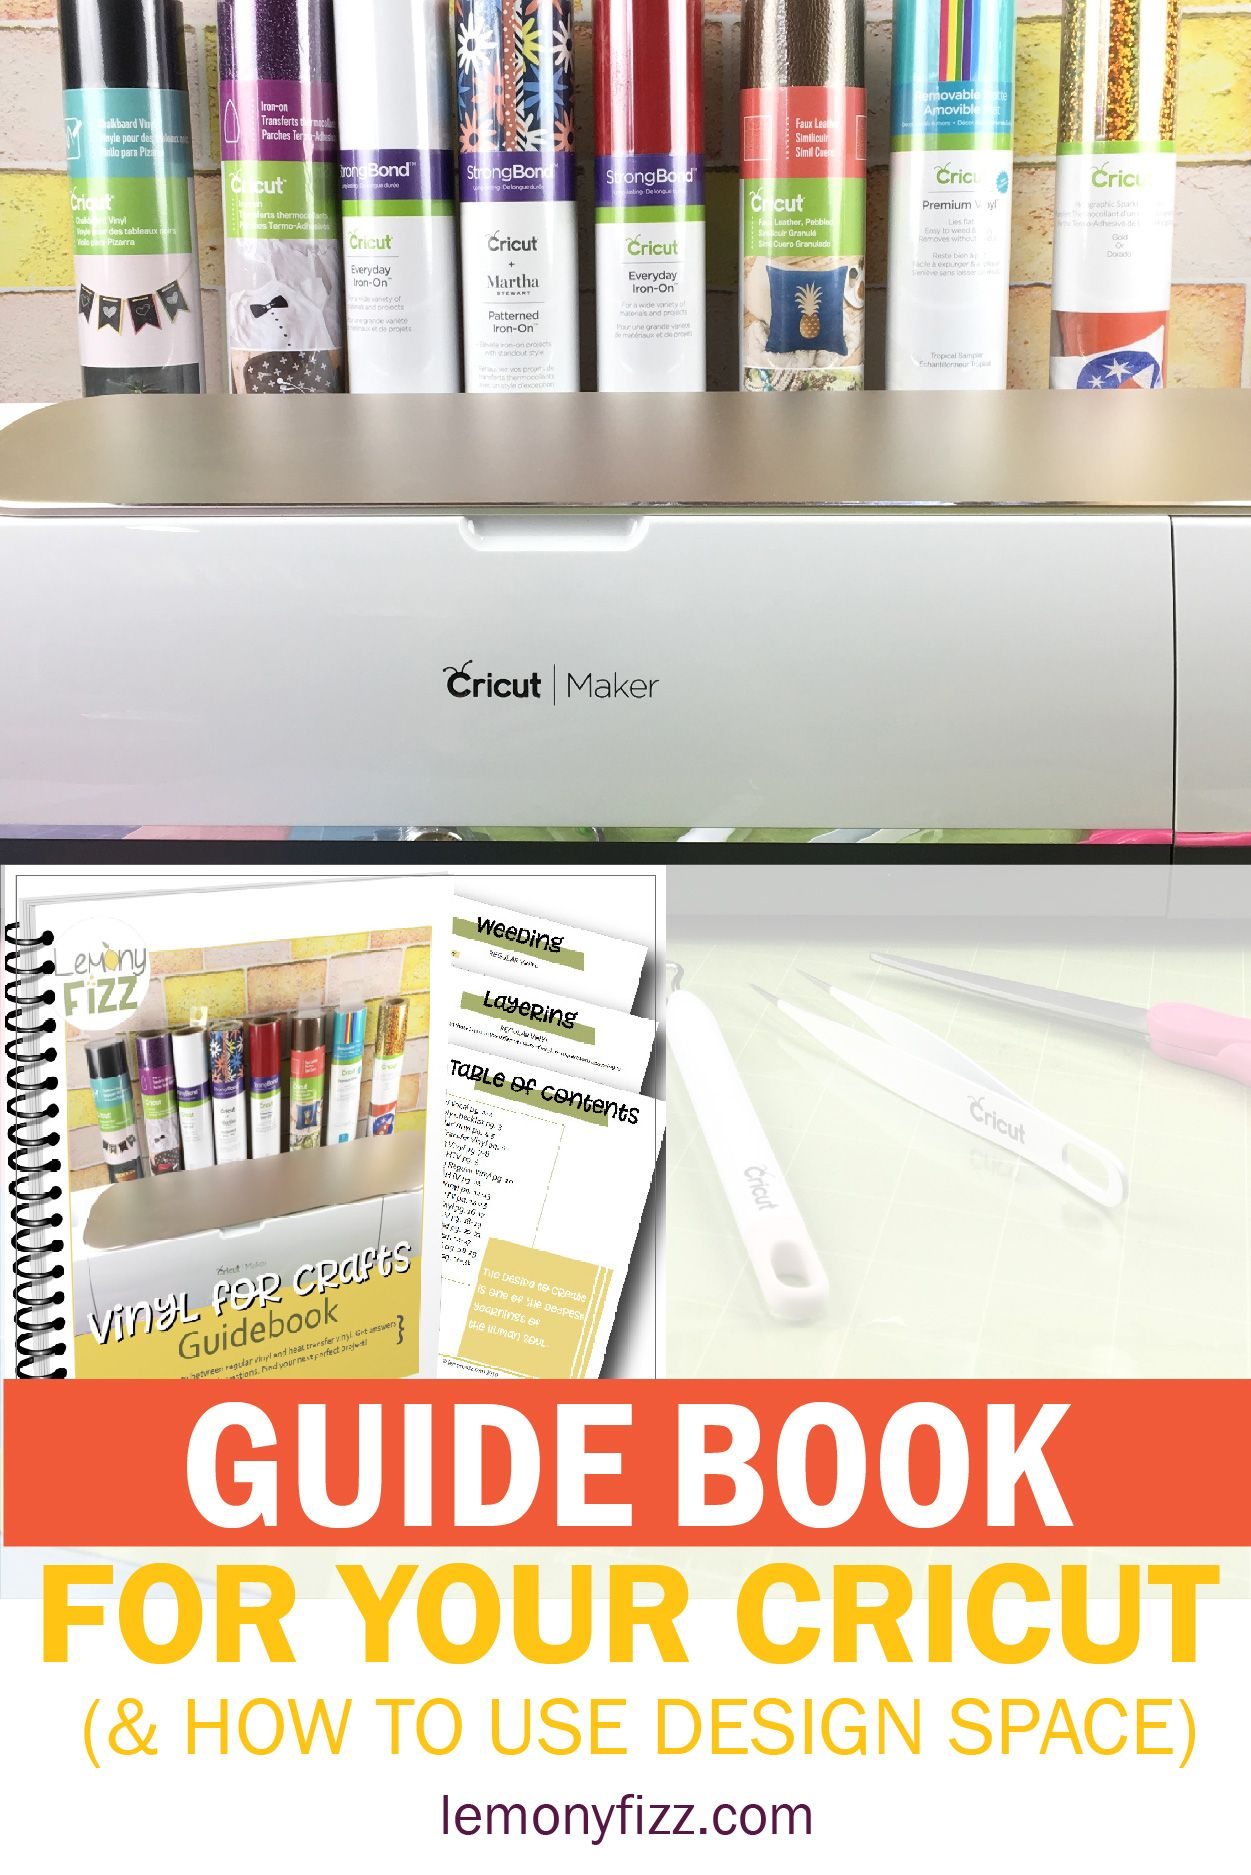 Cricut Guidebook for Design Space Basics #cricutvinylprojects